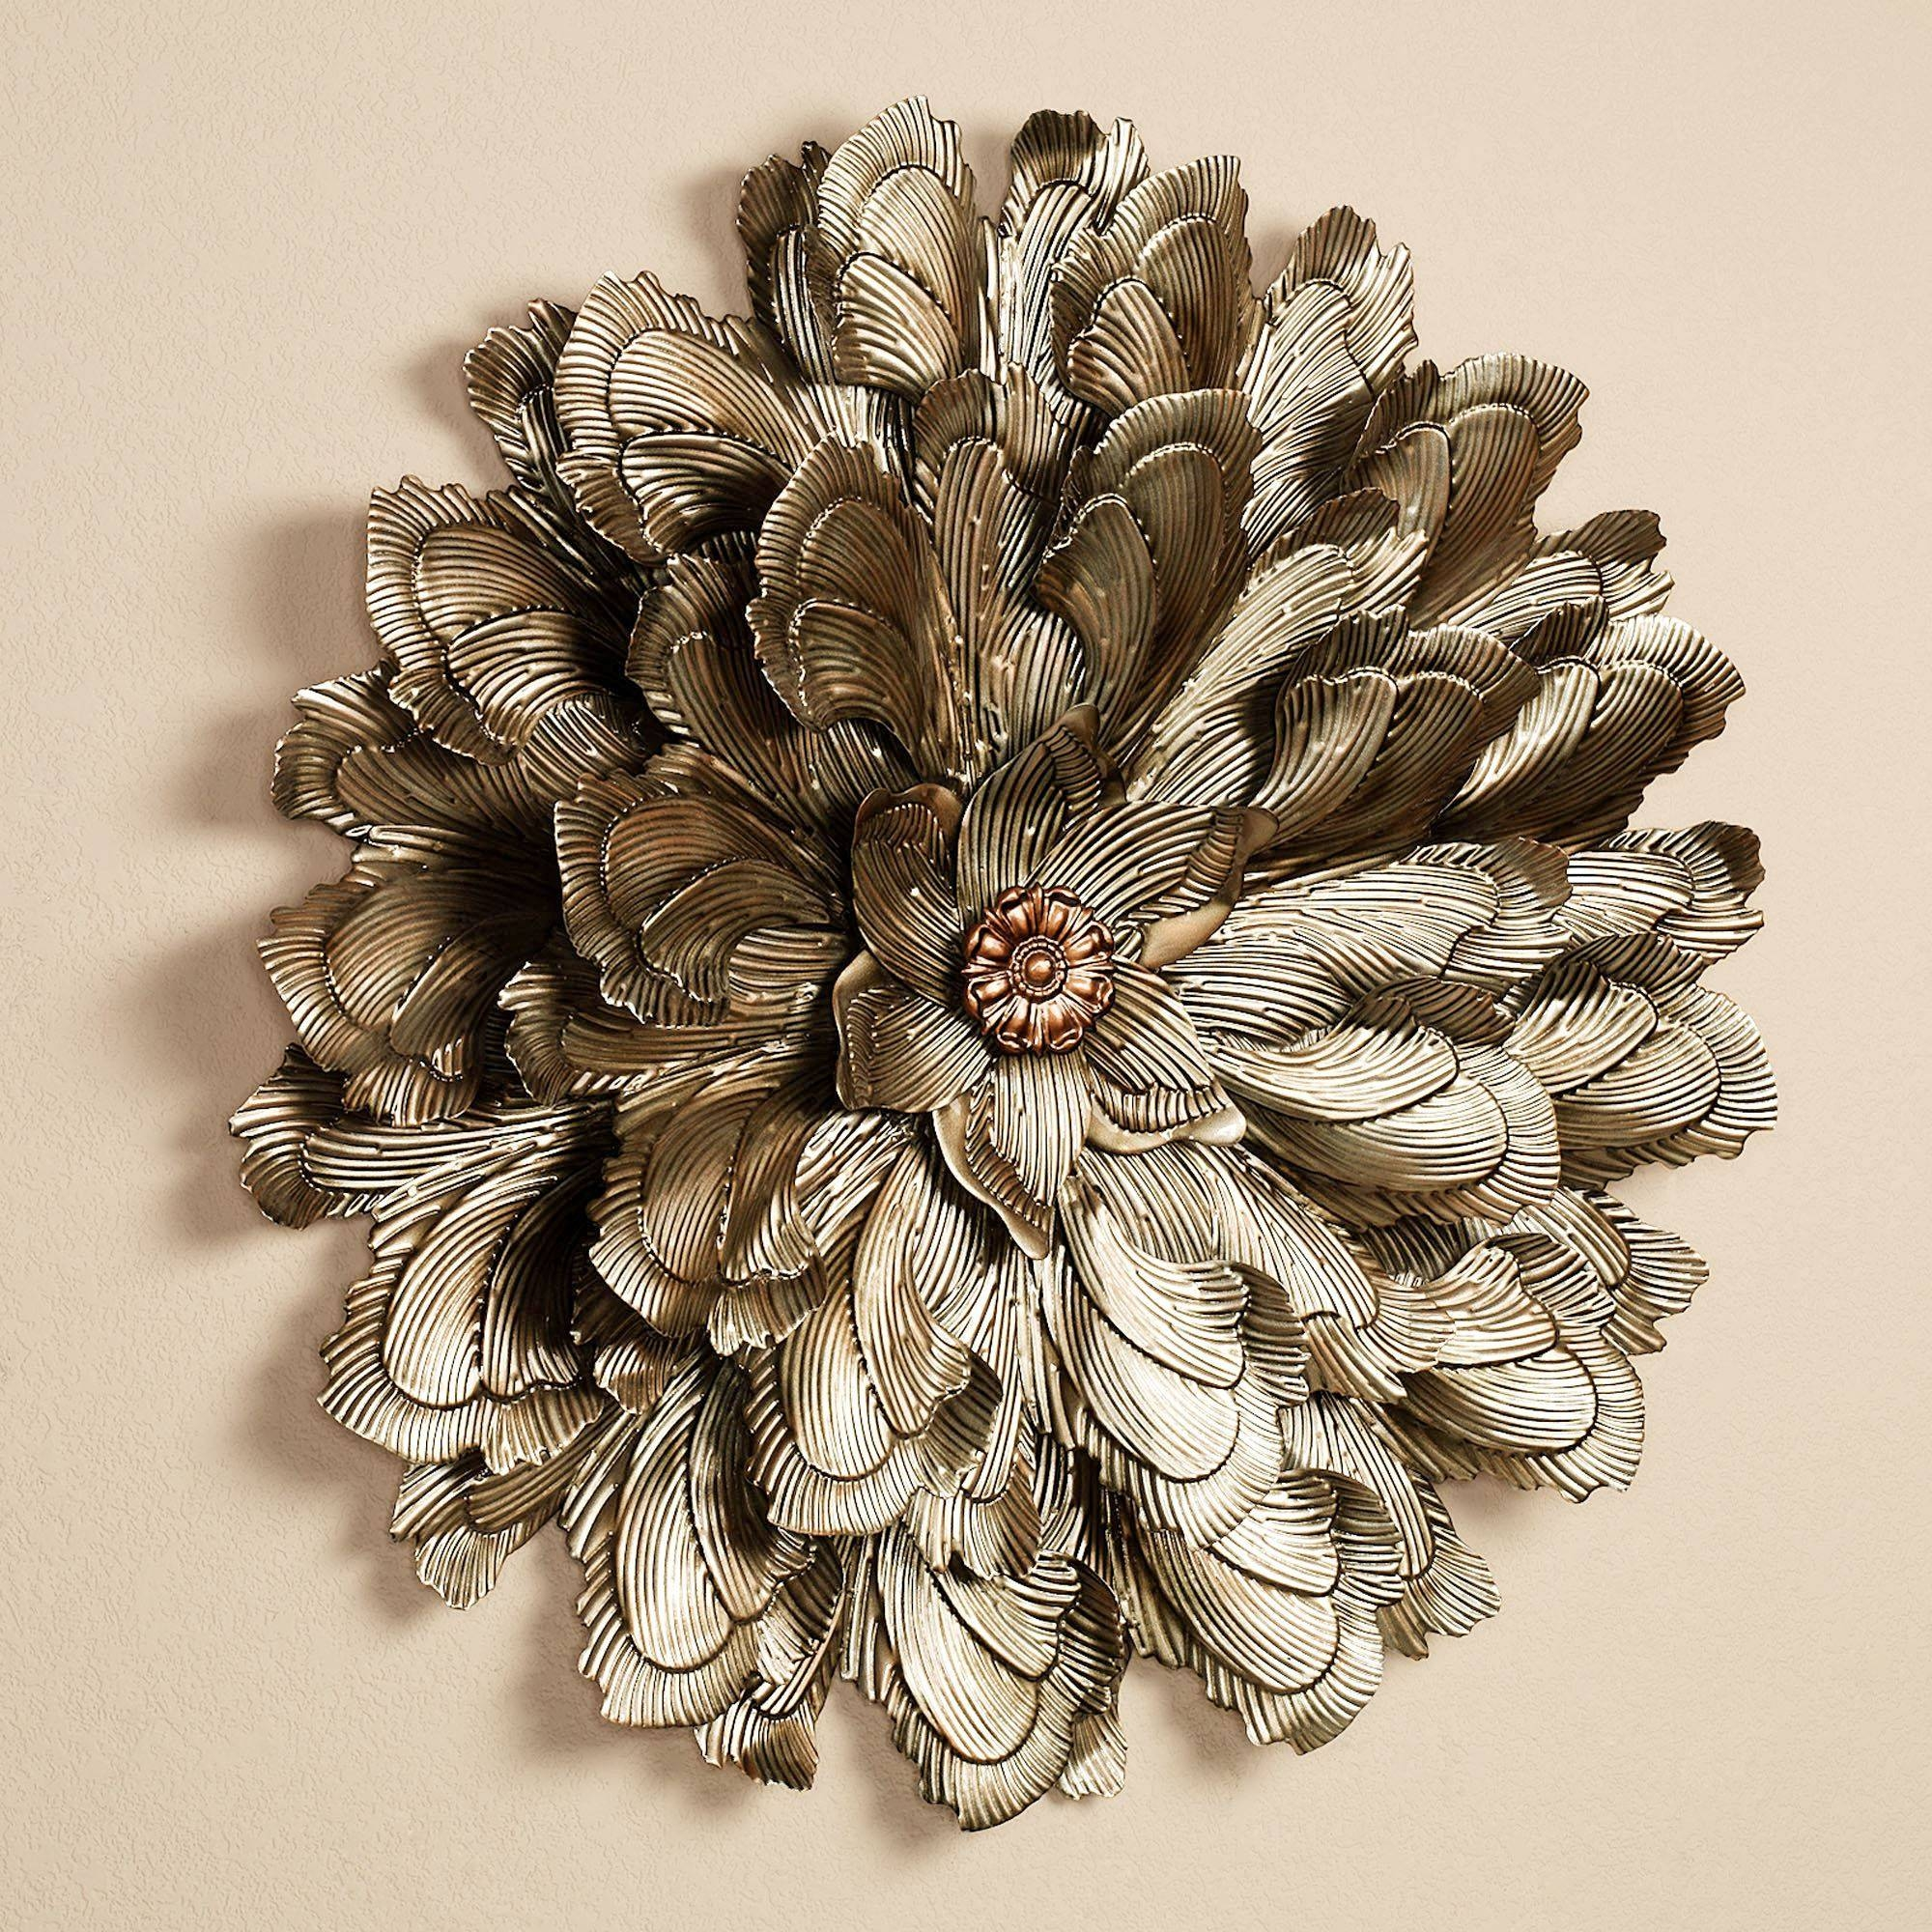 41 Silver Metal Wall Art Flowers, Home Metal Wall Art Wall Decor Intended For Most Popular Metal Wall Art Flowers (View 3 of 20)